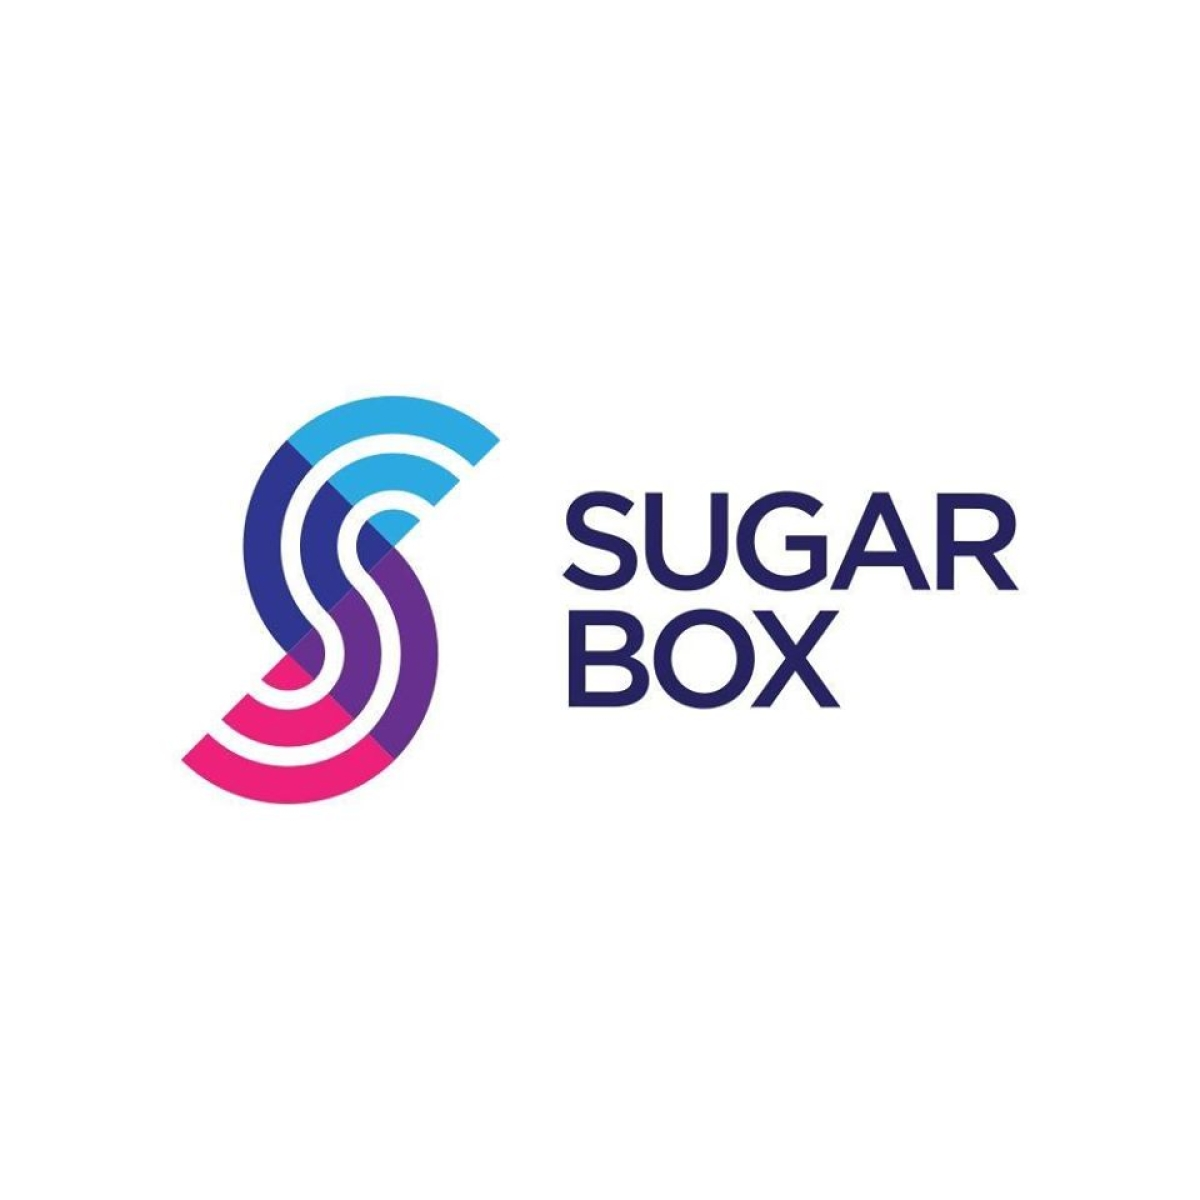 ZEEL to invest another 522 crore in SugarBox